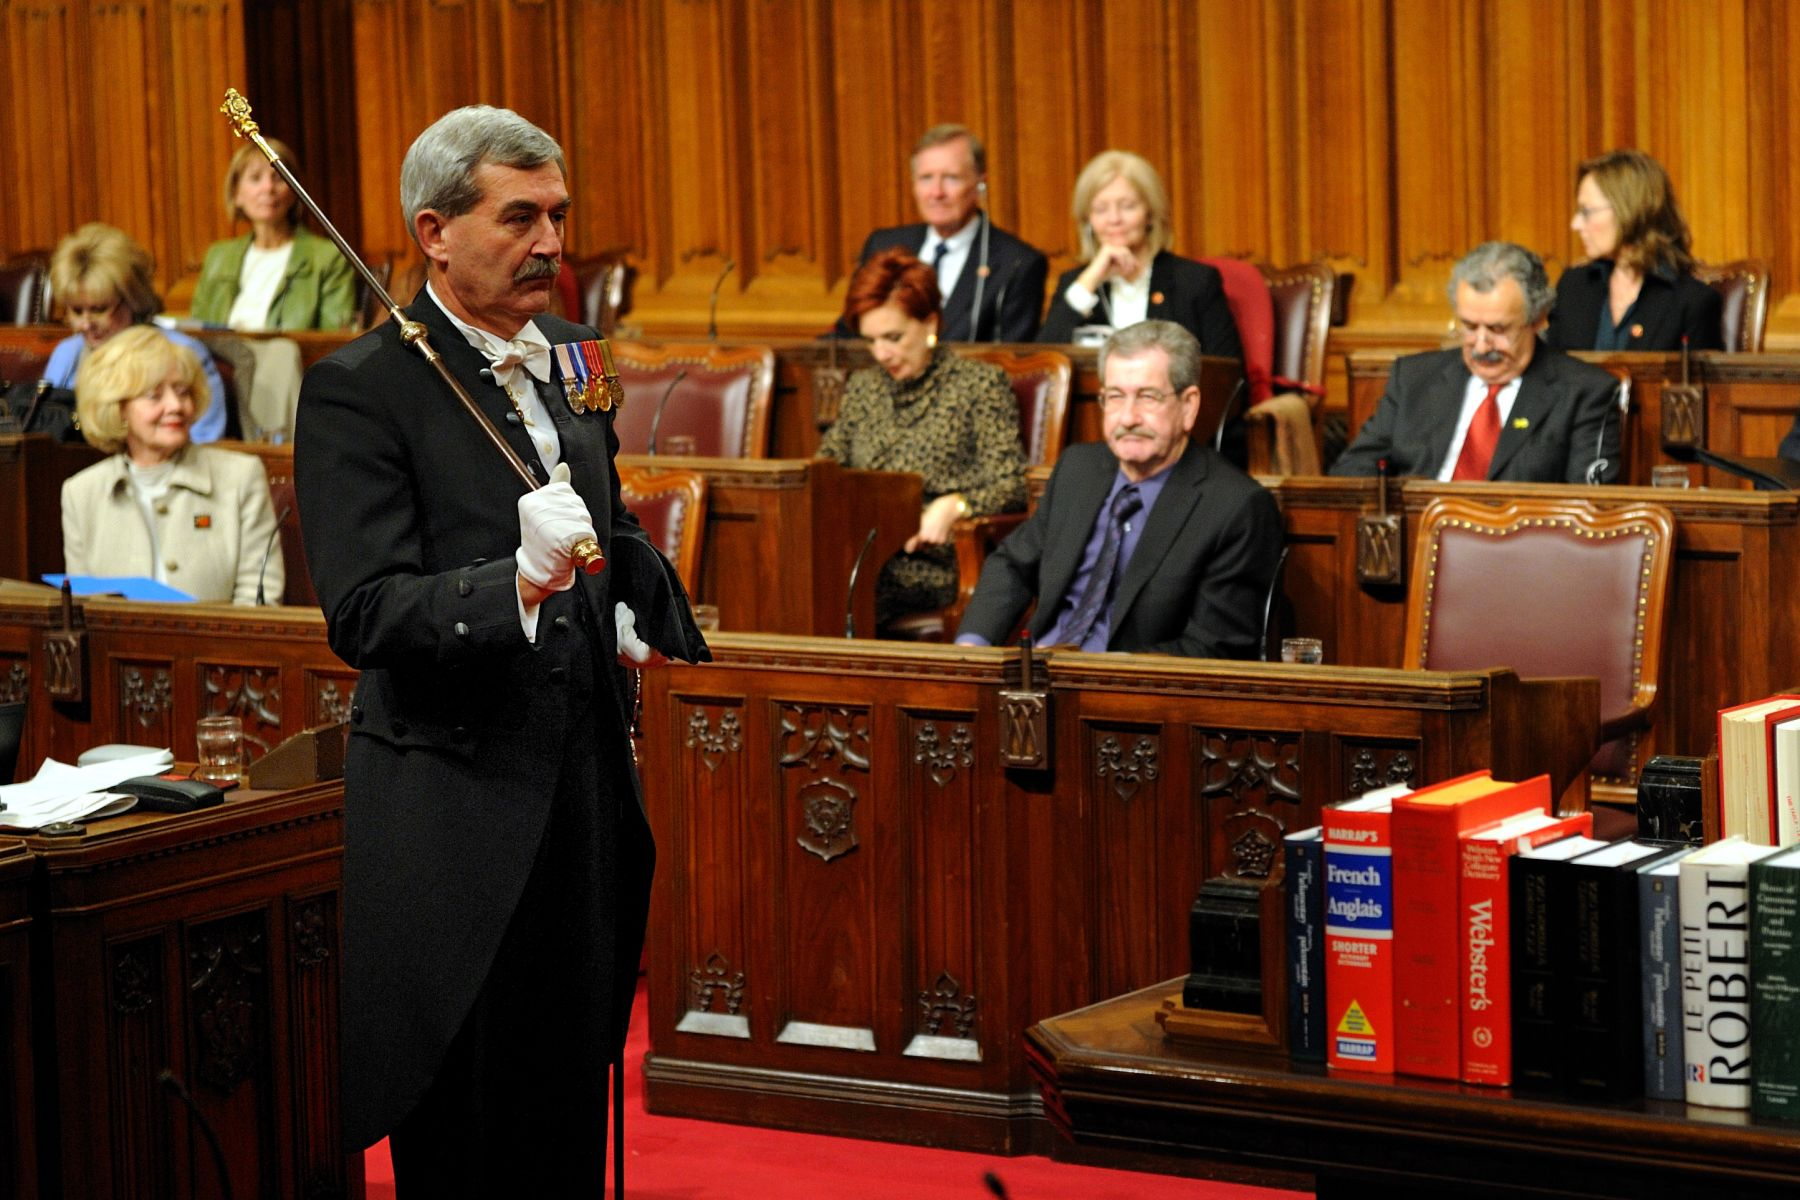 Royal Assent is granted by a representative of the Crown to approve a bill passed by the House of Commons and the Senate, making it into an Act of Parliament. Royal Assent is therefore the last stage in the legislative process and assembles the three constituent entities of Parliament (Crown, Senate, House of Commons).